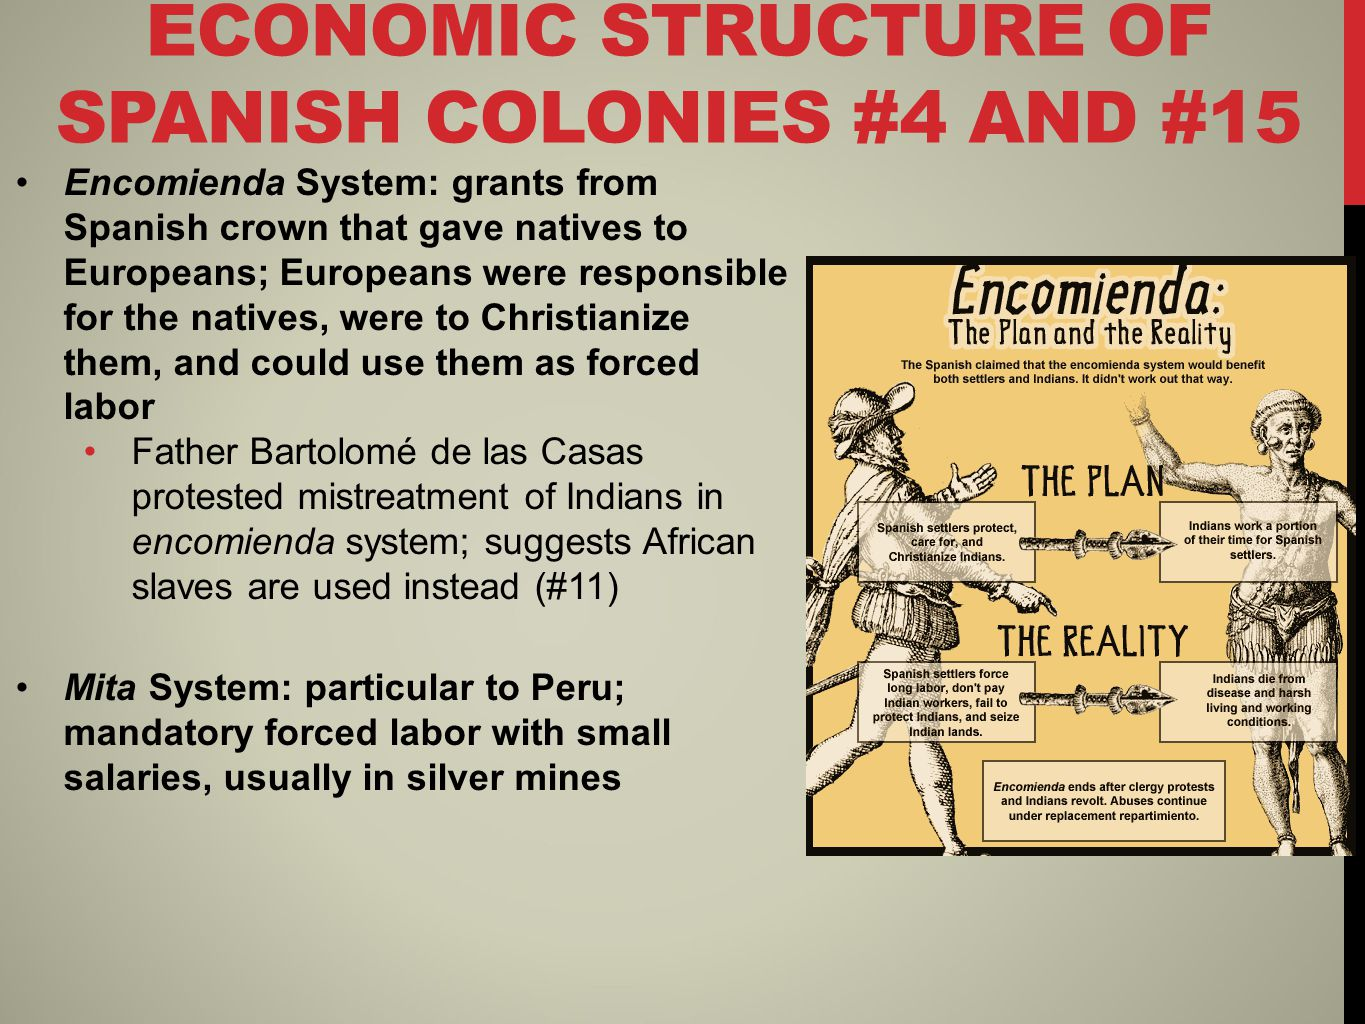 ECONOMIC STRUCTURE OF SPANISH COLONIES #4 AND #15 Encomienda System: grants from Spanish crown that gave natives to Europeans; Europeans were responsible for the natives, were to Christianize them, and could use them as forced labor Father Bartolomé de las Casas protested mistreatment of Indians in encomienda system; suggests African slaves are used instead (#11) Mita System: particular to Peru; mandatory forced labor with small salaries, usually in silver mines